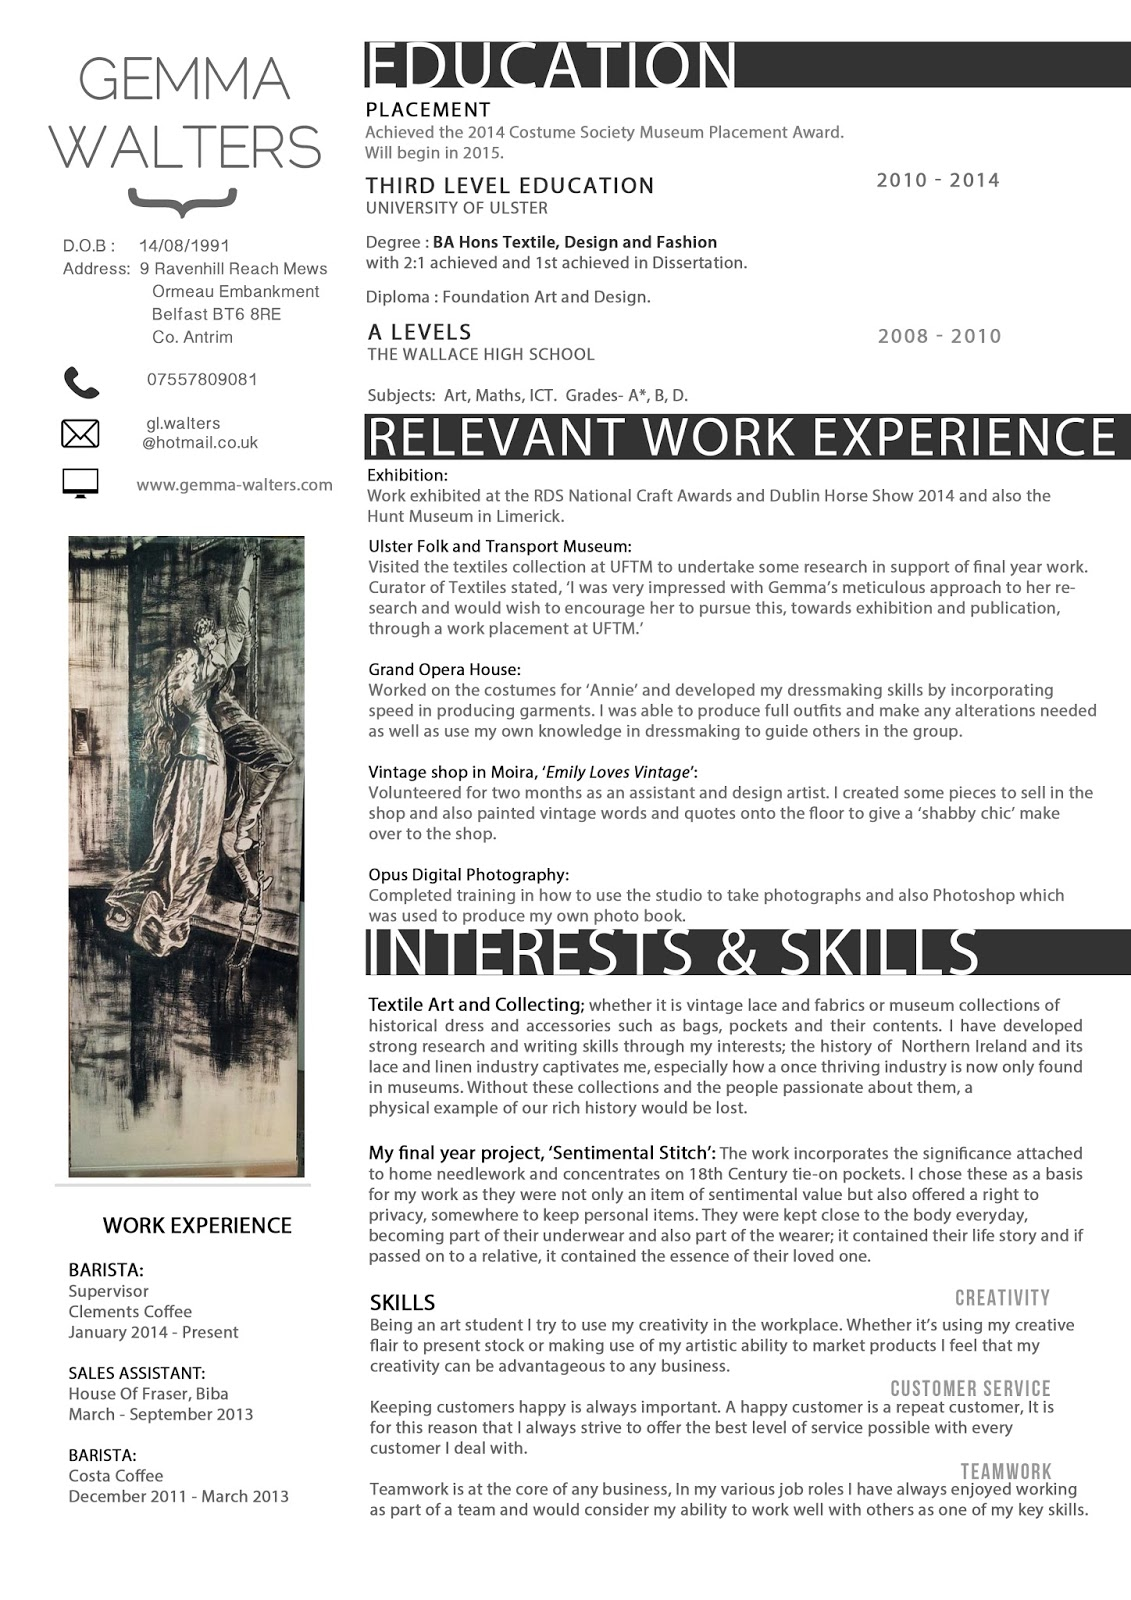 sample resume for web designer experienced possessions sample resume for web designer experienced possessions - Web Designer Resume Template